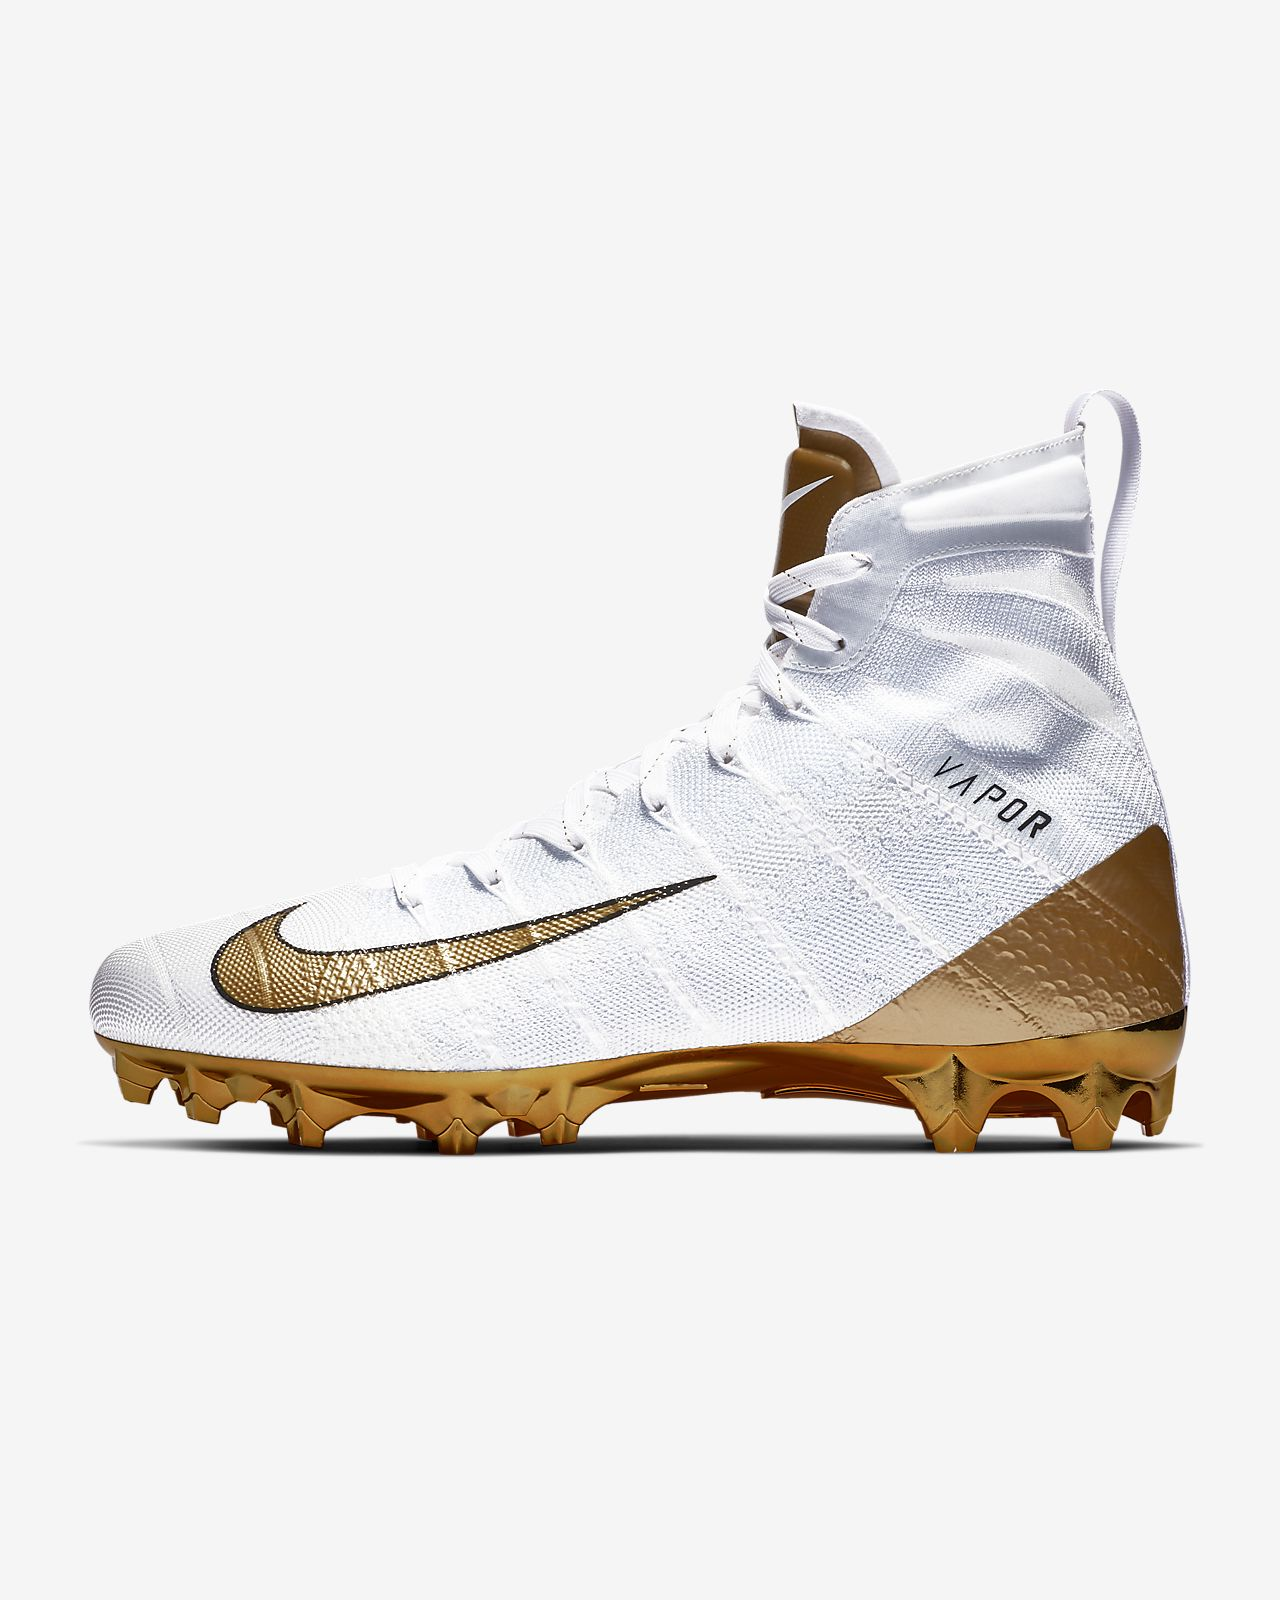 cfce33b1458b Nike Vapor Untouchable 3 Elite Football Cleat. Nike.com